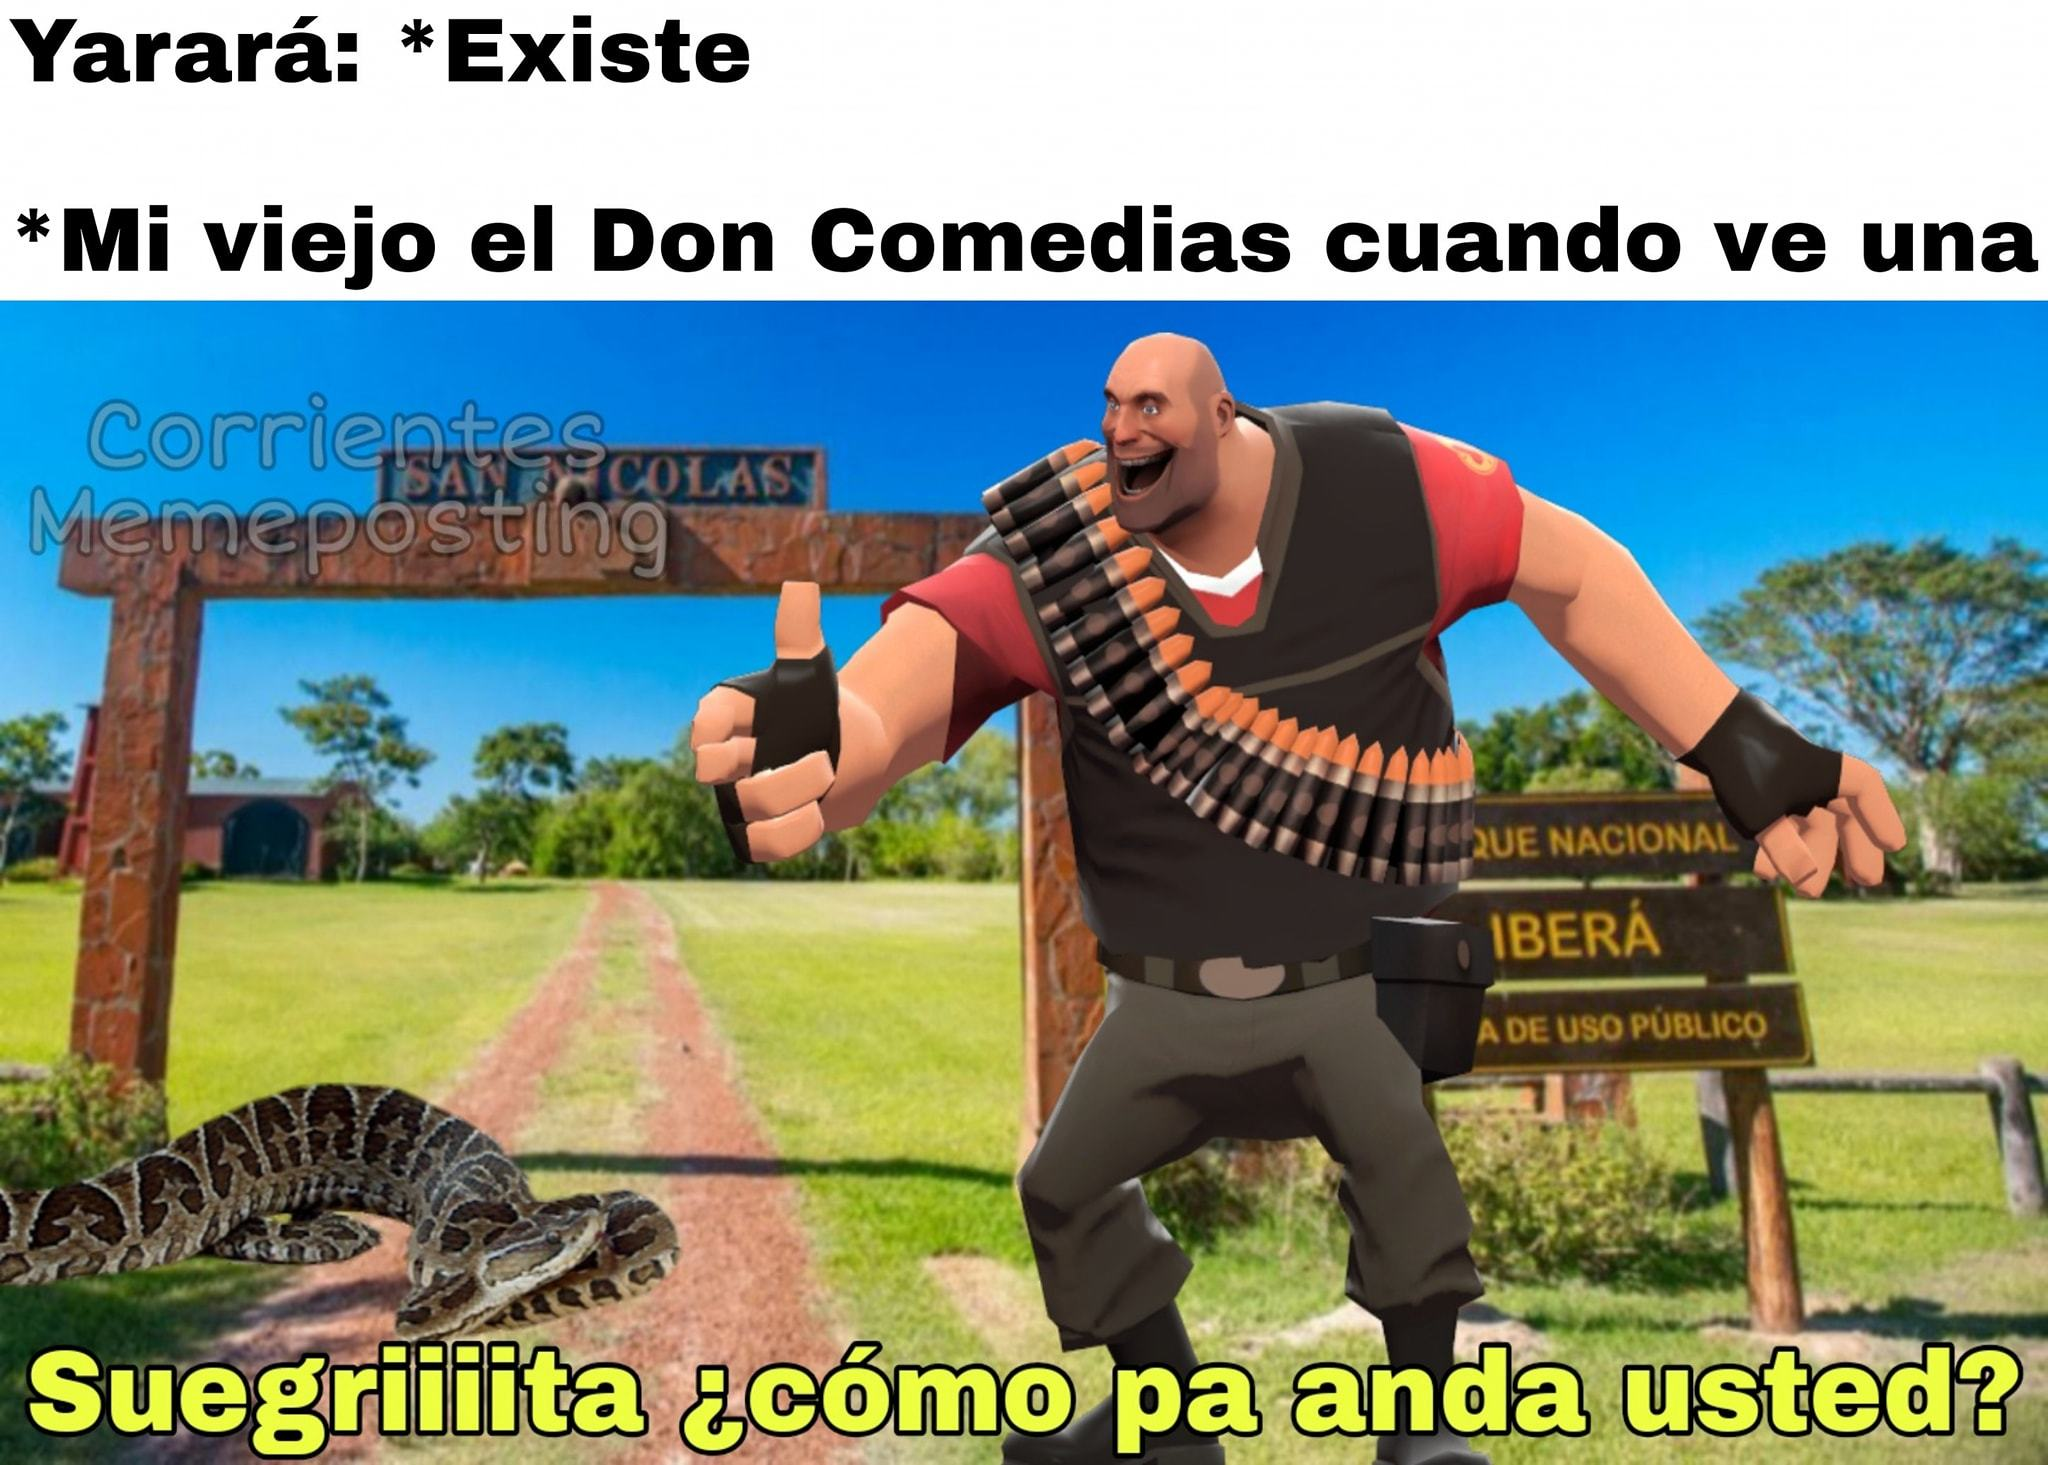 don comedia correntino - meme